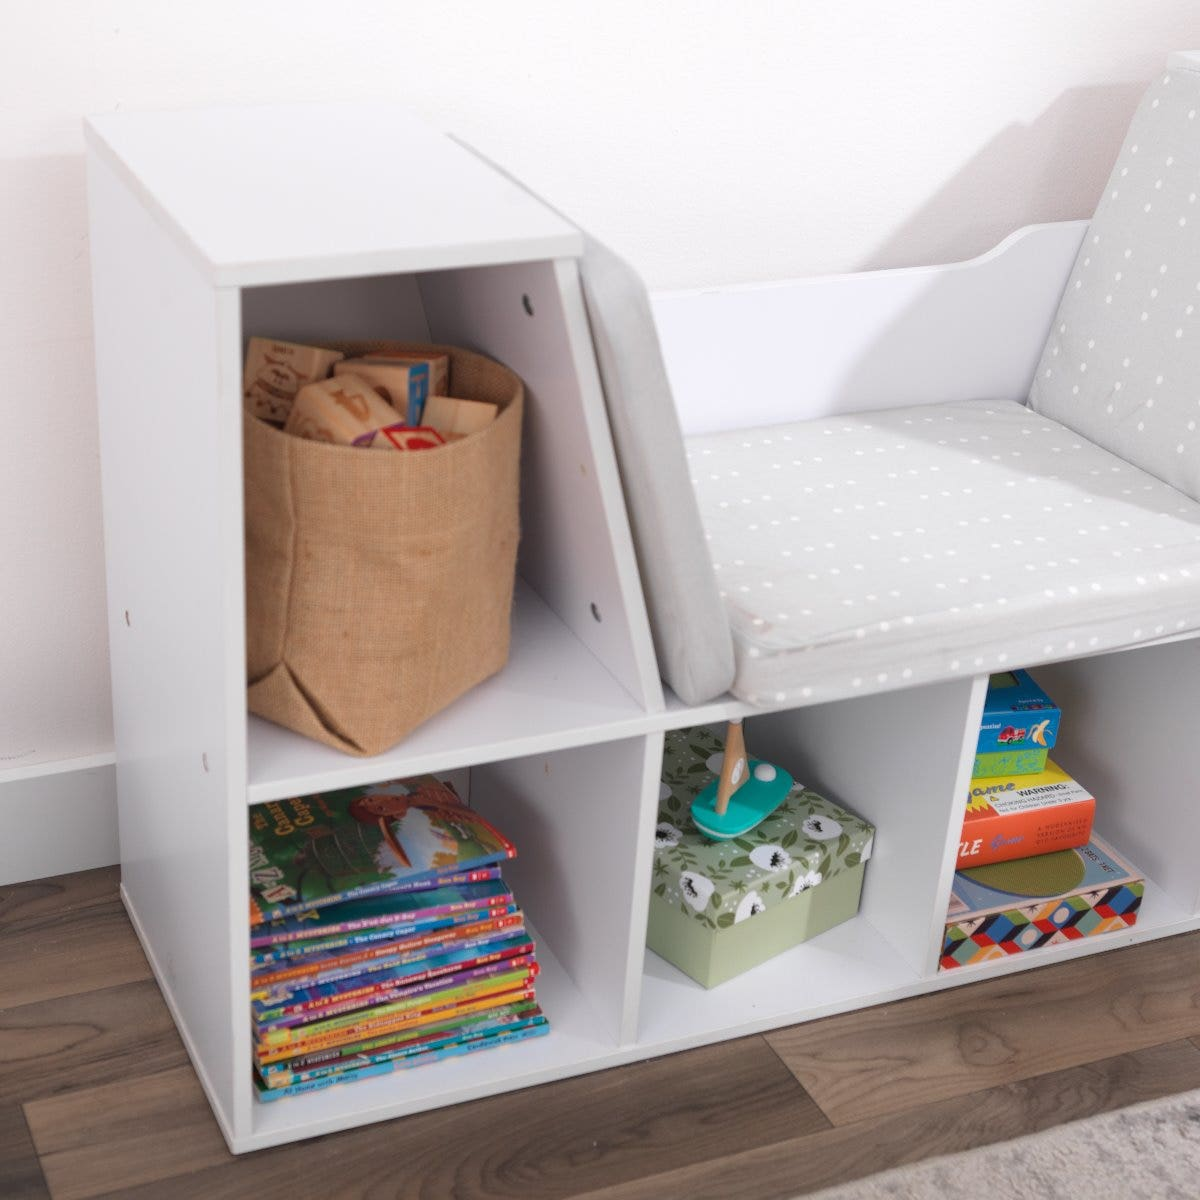 Taller storage space on both sides of the cushion for hard-to-fit items, like picture books